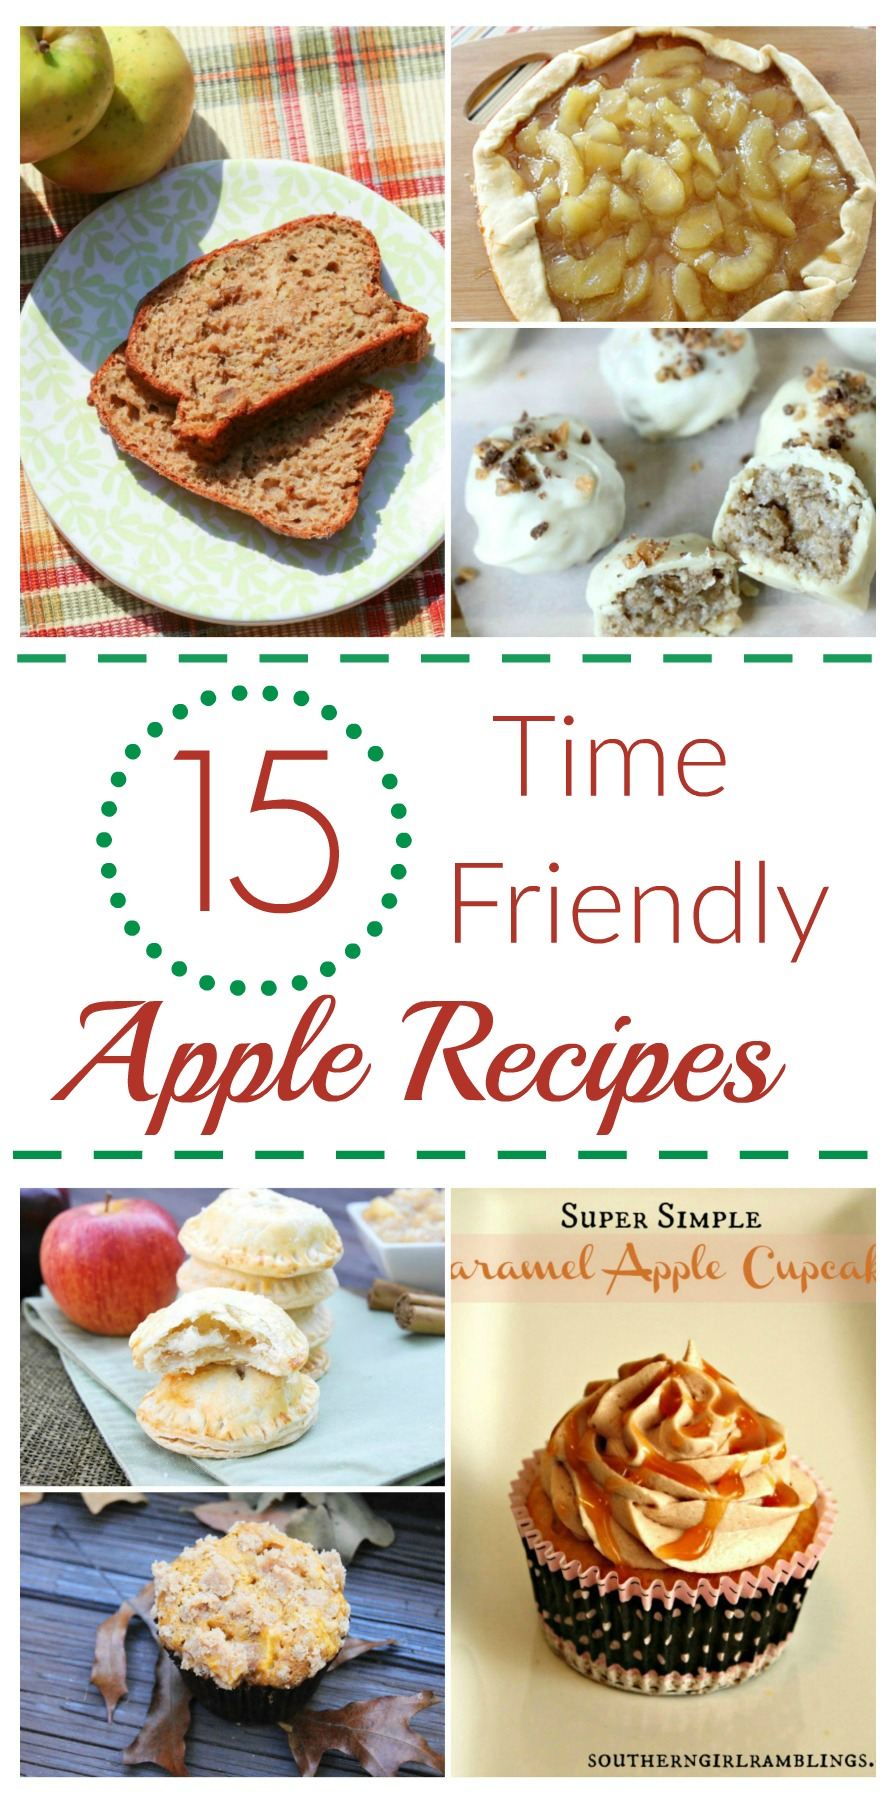 Looking for some delicious apple recipes that don't take forever to make? Check out these 15 Time Friendly Apple Recipes here!